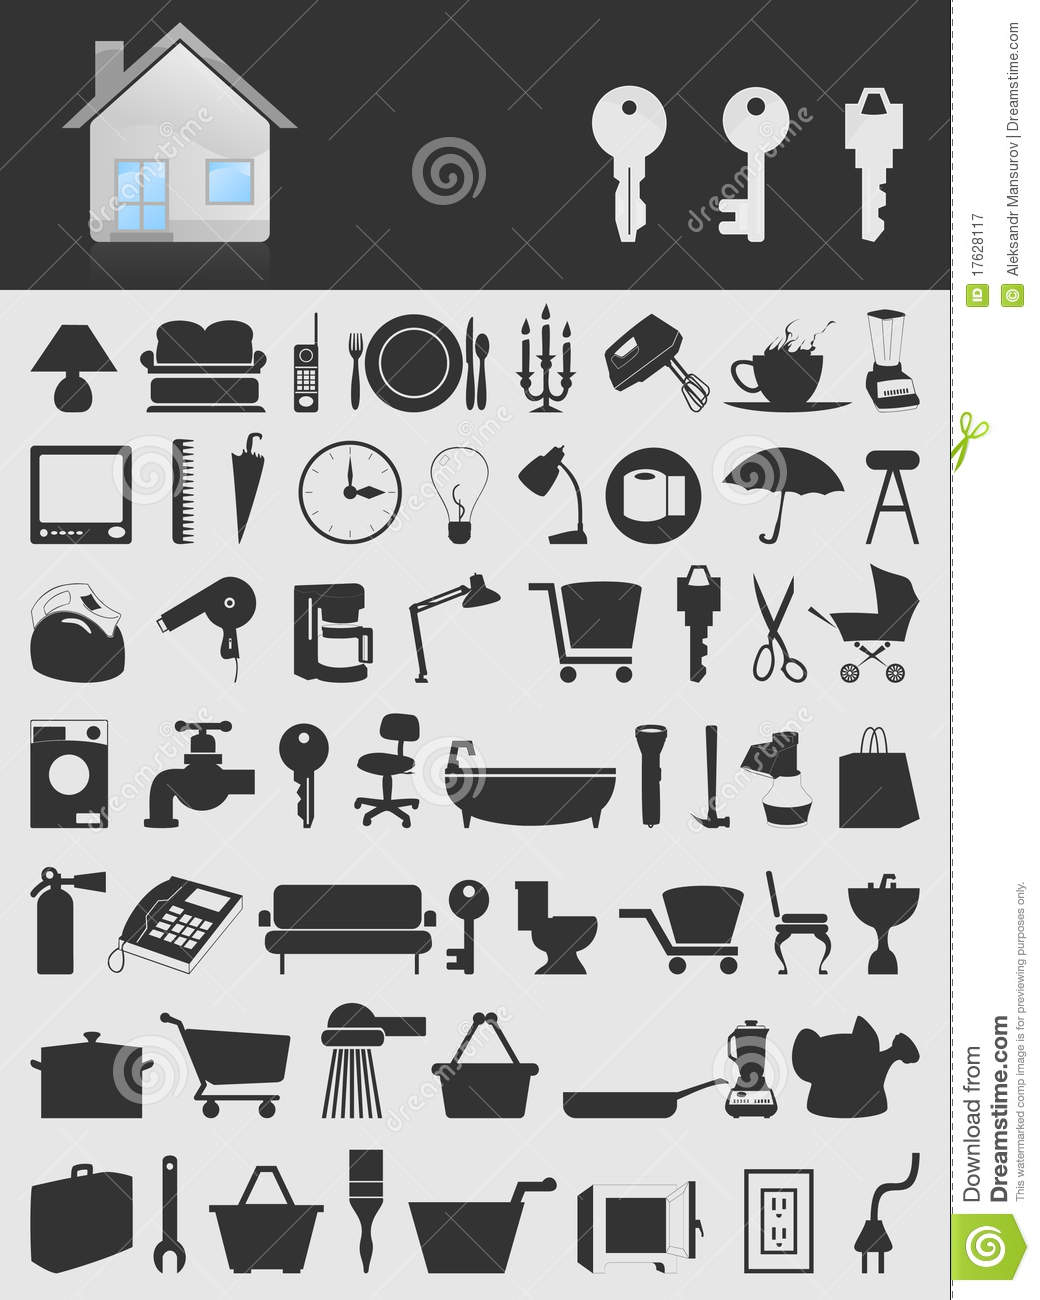 House icons2